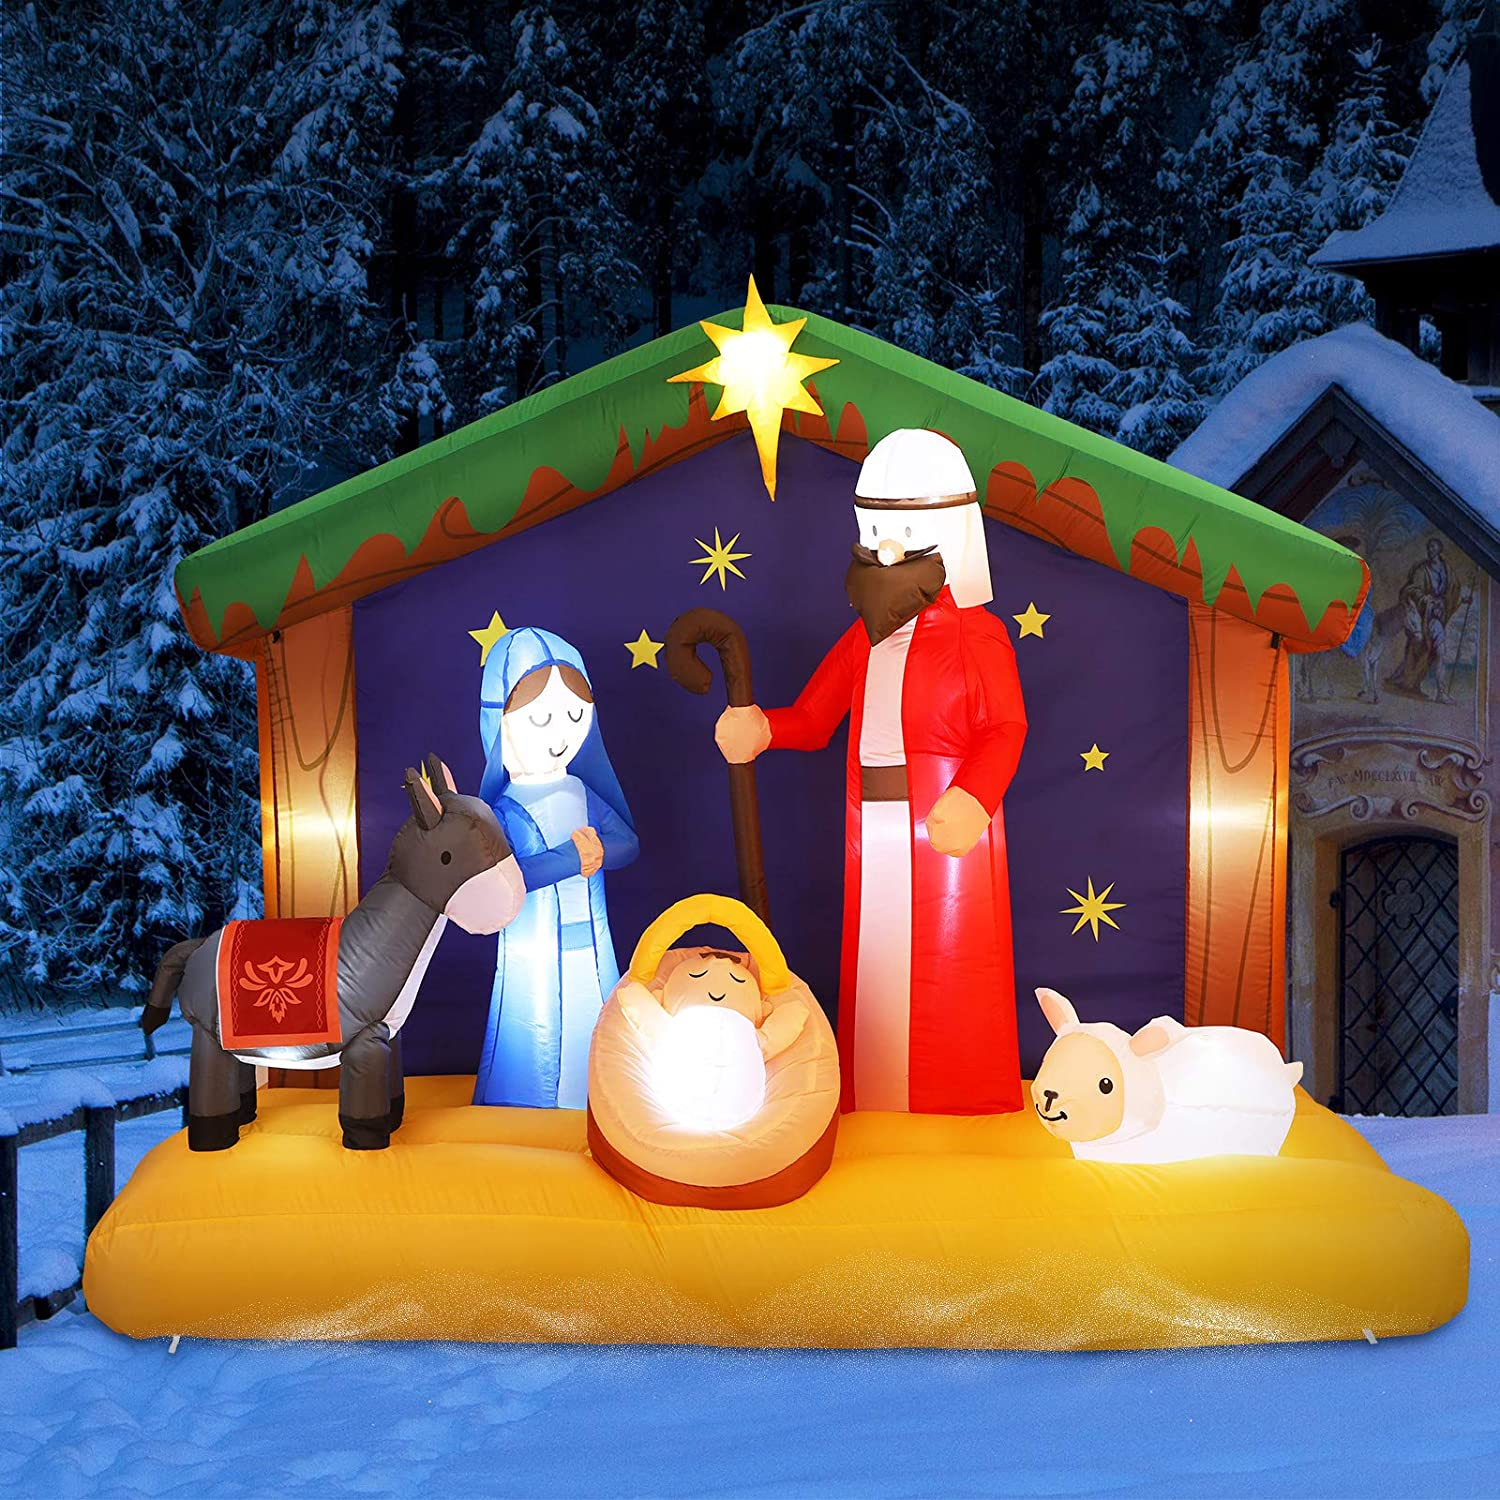 Christmas Inflatable Nativity Scene, Blow Up LED Light Christmas Inflatable Jesus for Garden Yard Lawn Decoration